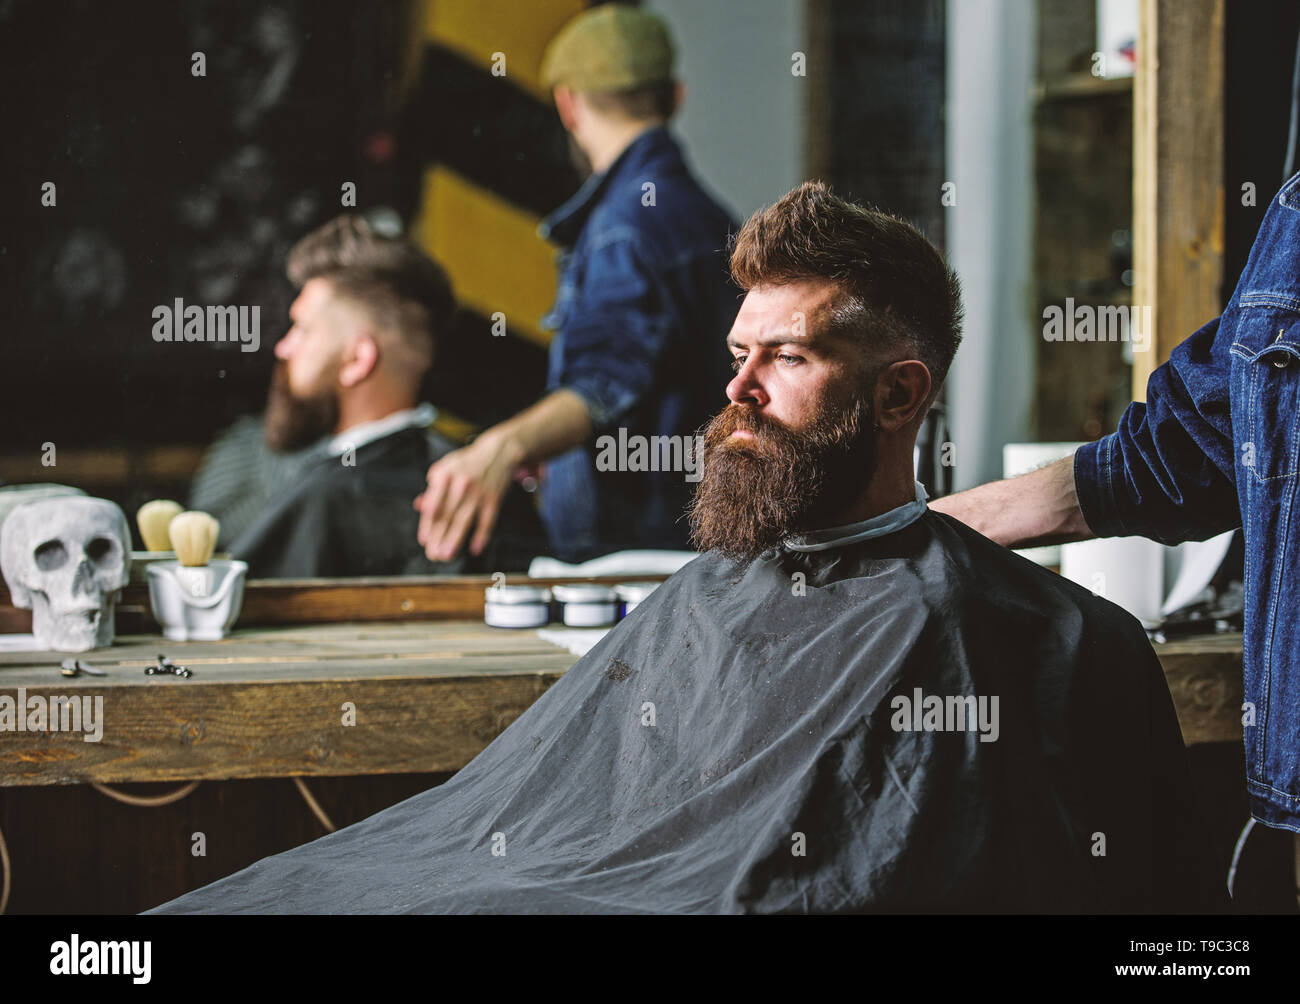 Man with beard covered with black cape sits in hairdressers chair, mirror background. Man with beard client of hipster barbershop. Barbershop concept. Hipster with beard waits for barber and haircut. - Stock Image